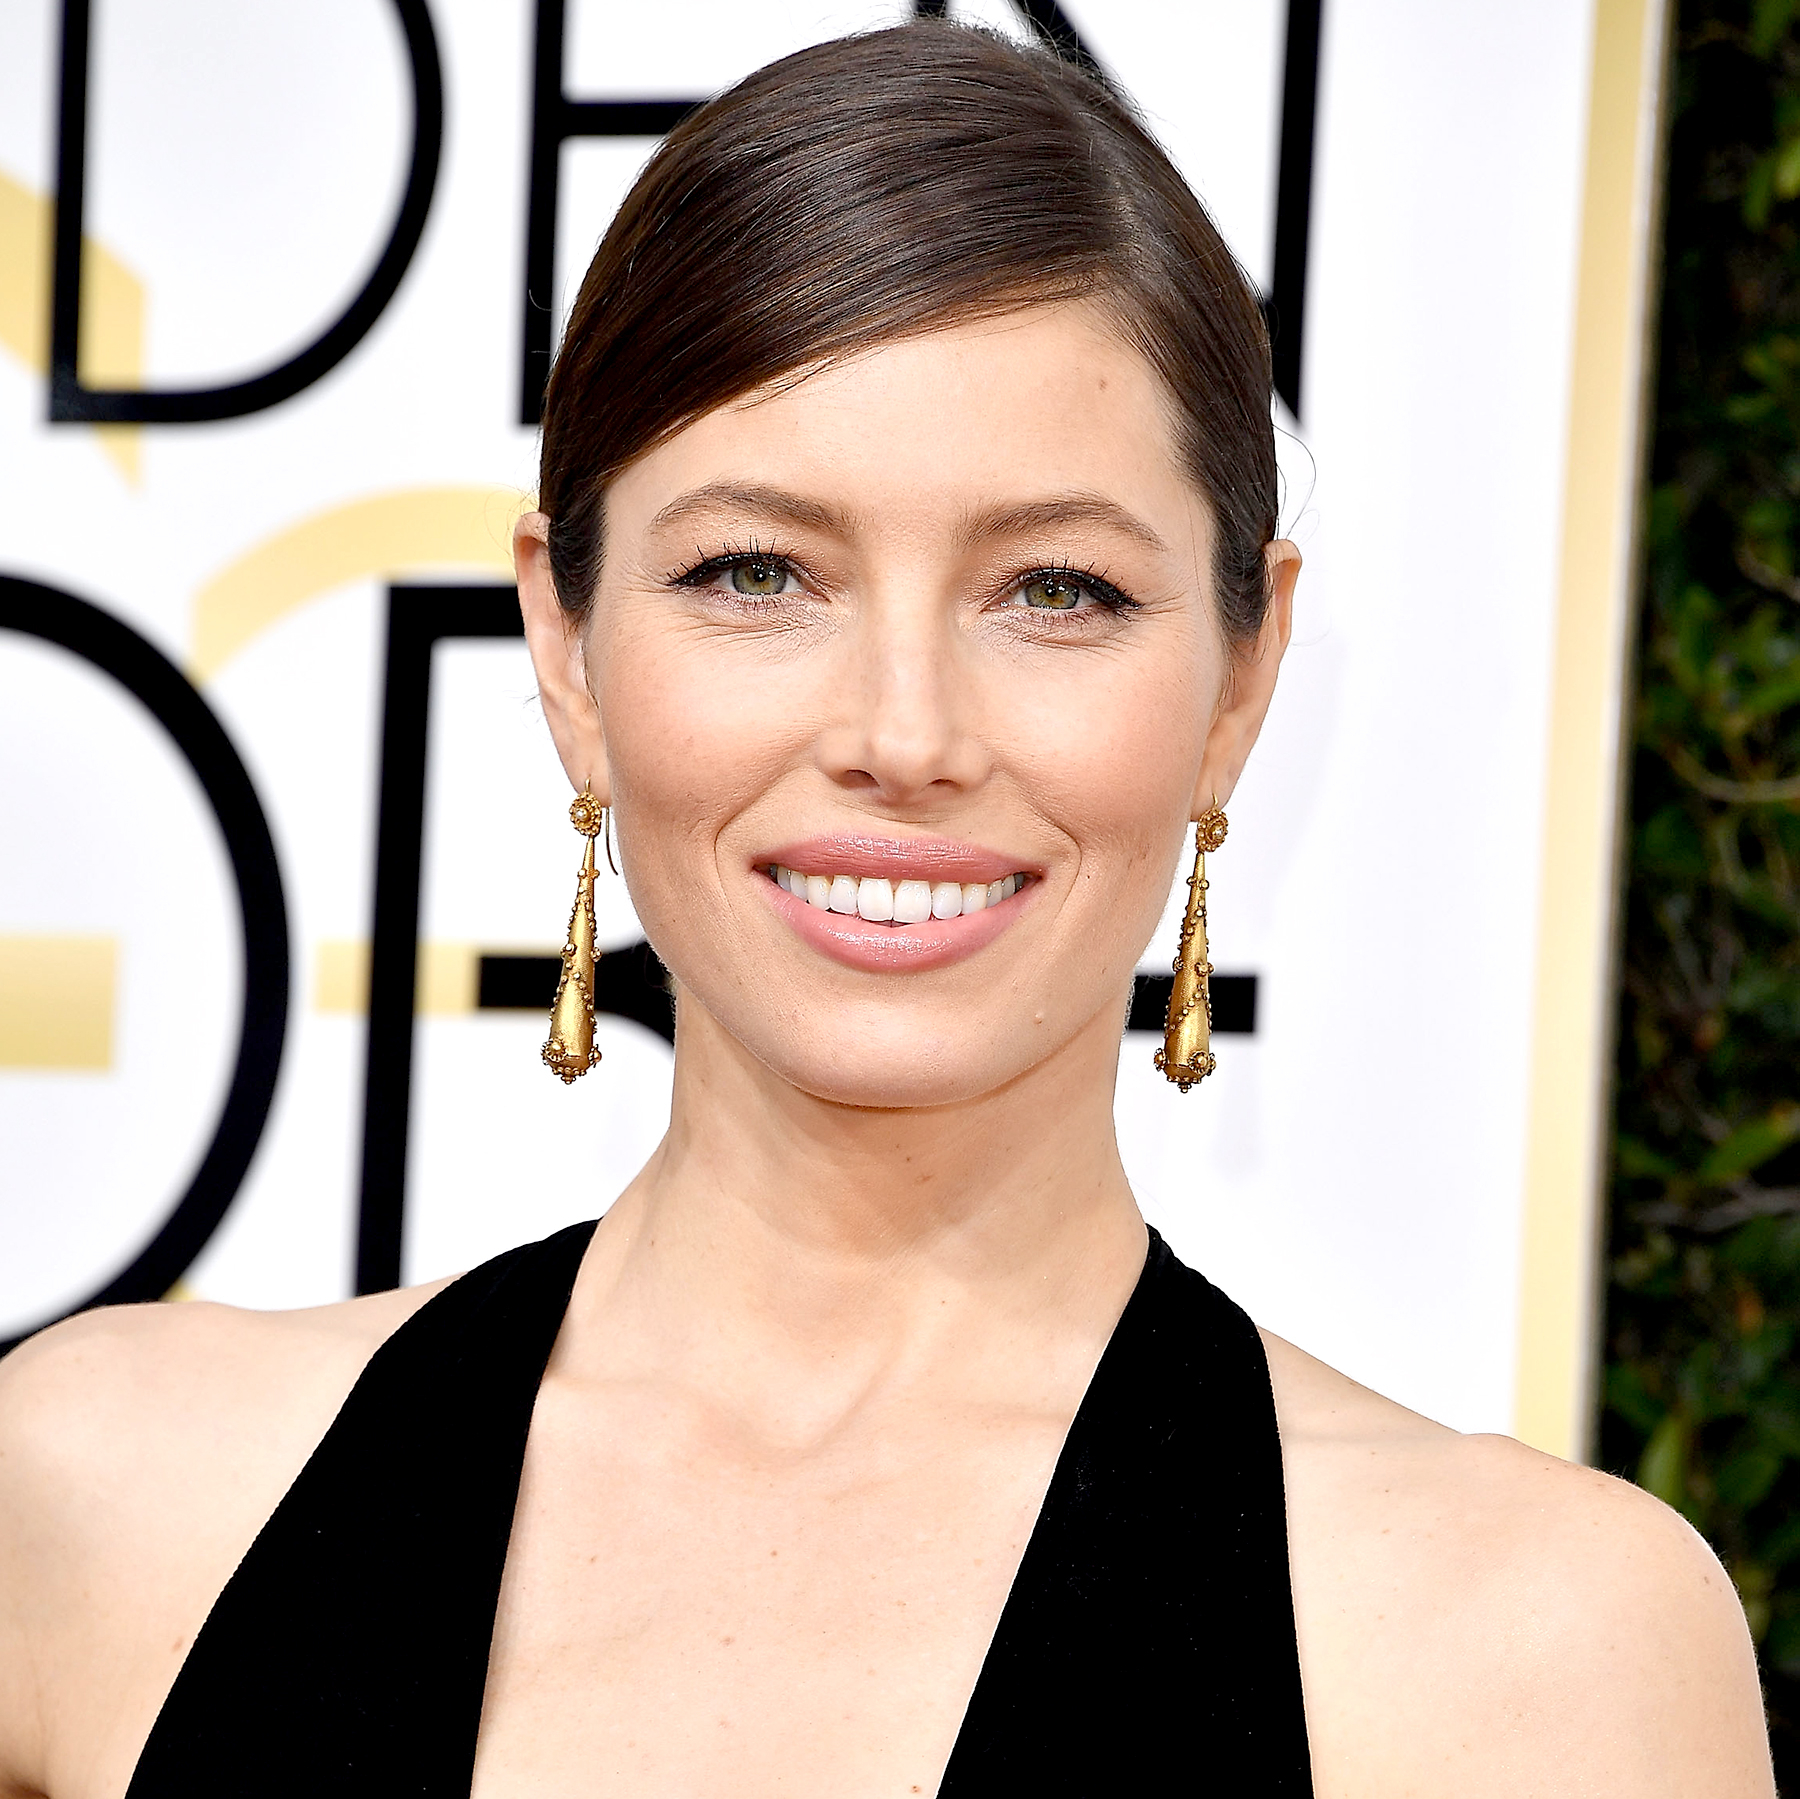 Jessica Biel arrives at the 74th Annual Golden Globe Awards at The Beverly Hilton Hotel on January 8, 2017 in Beverly Hills, California.